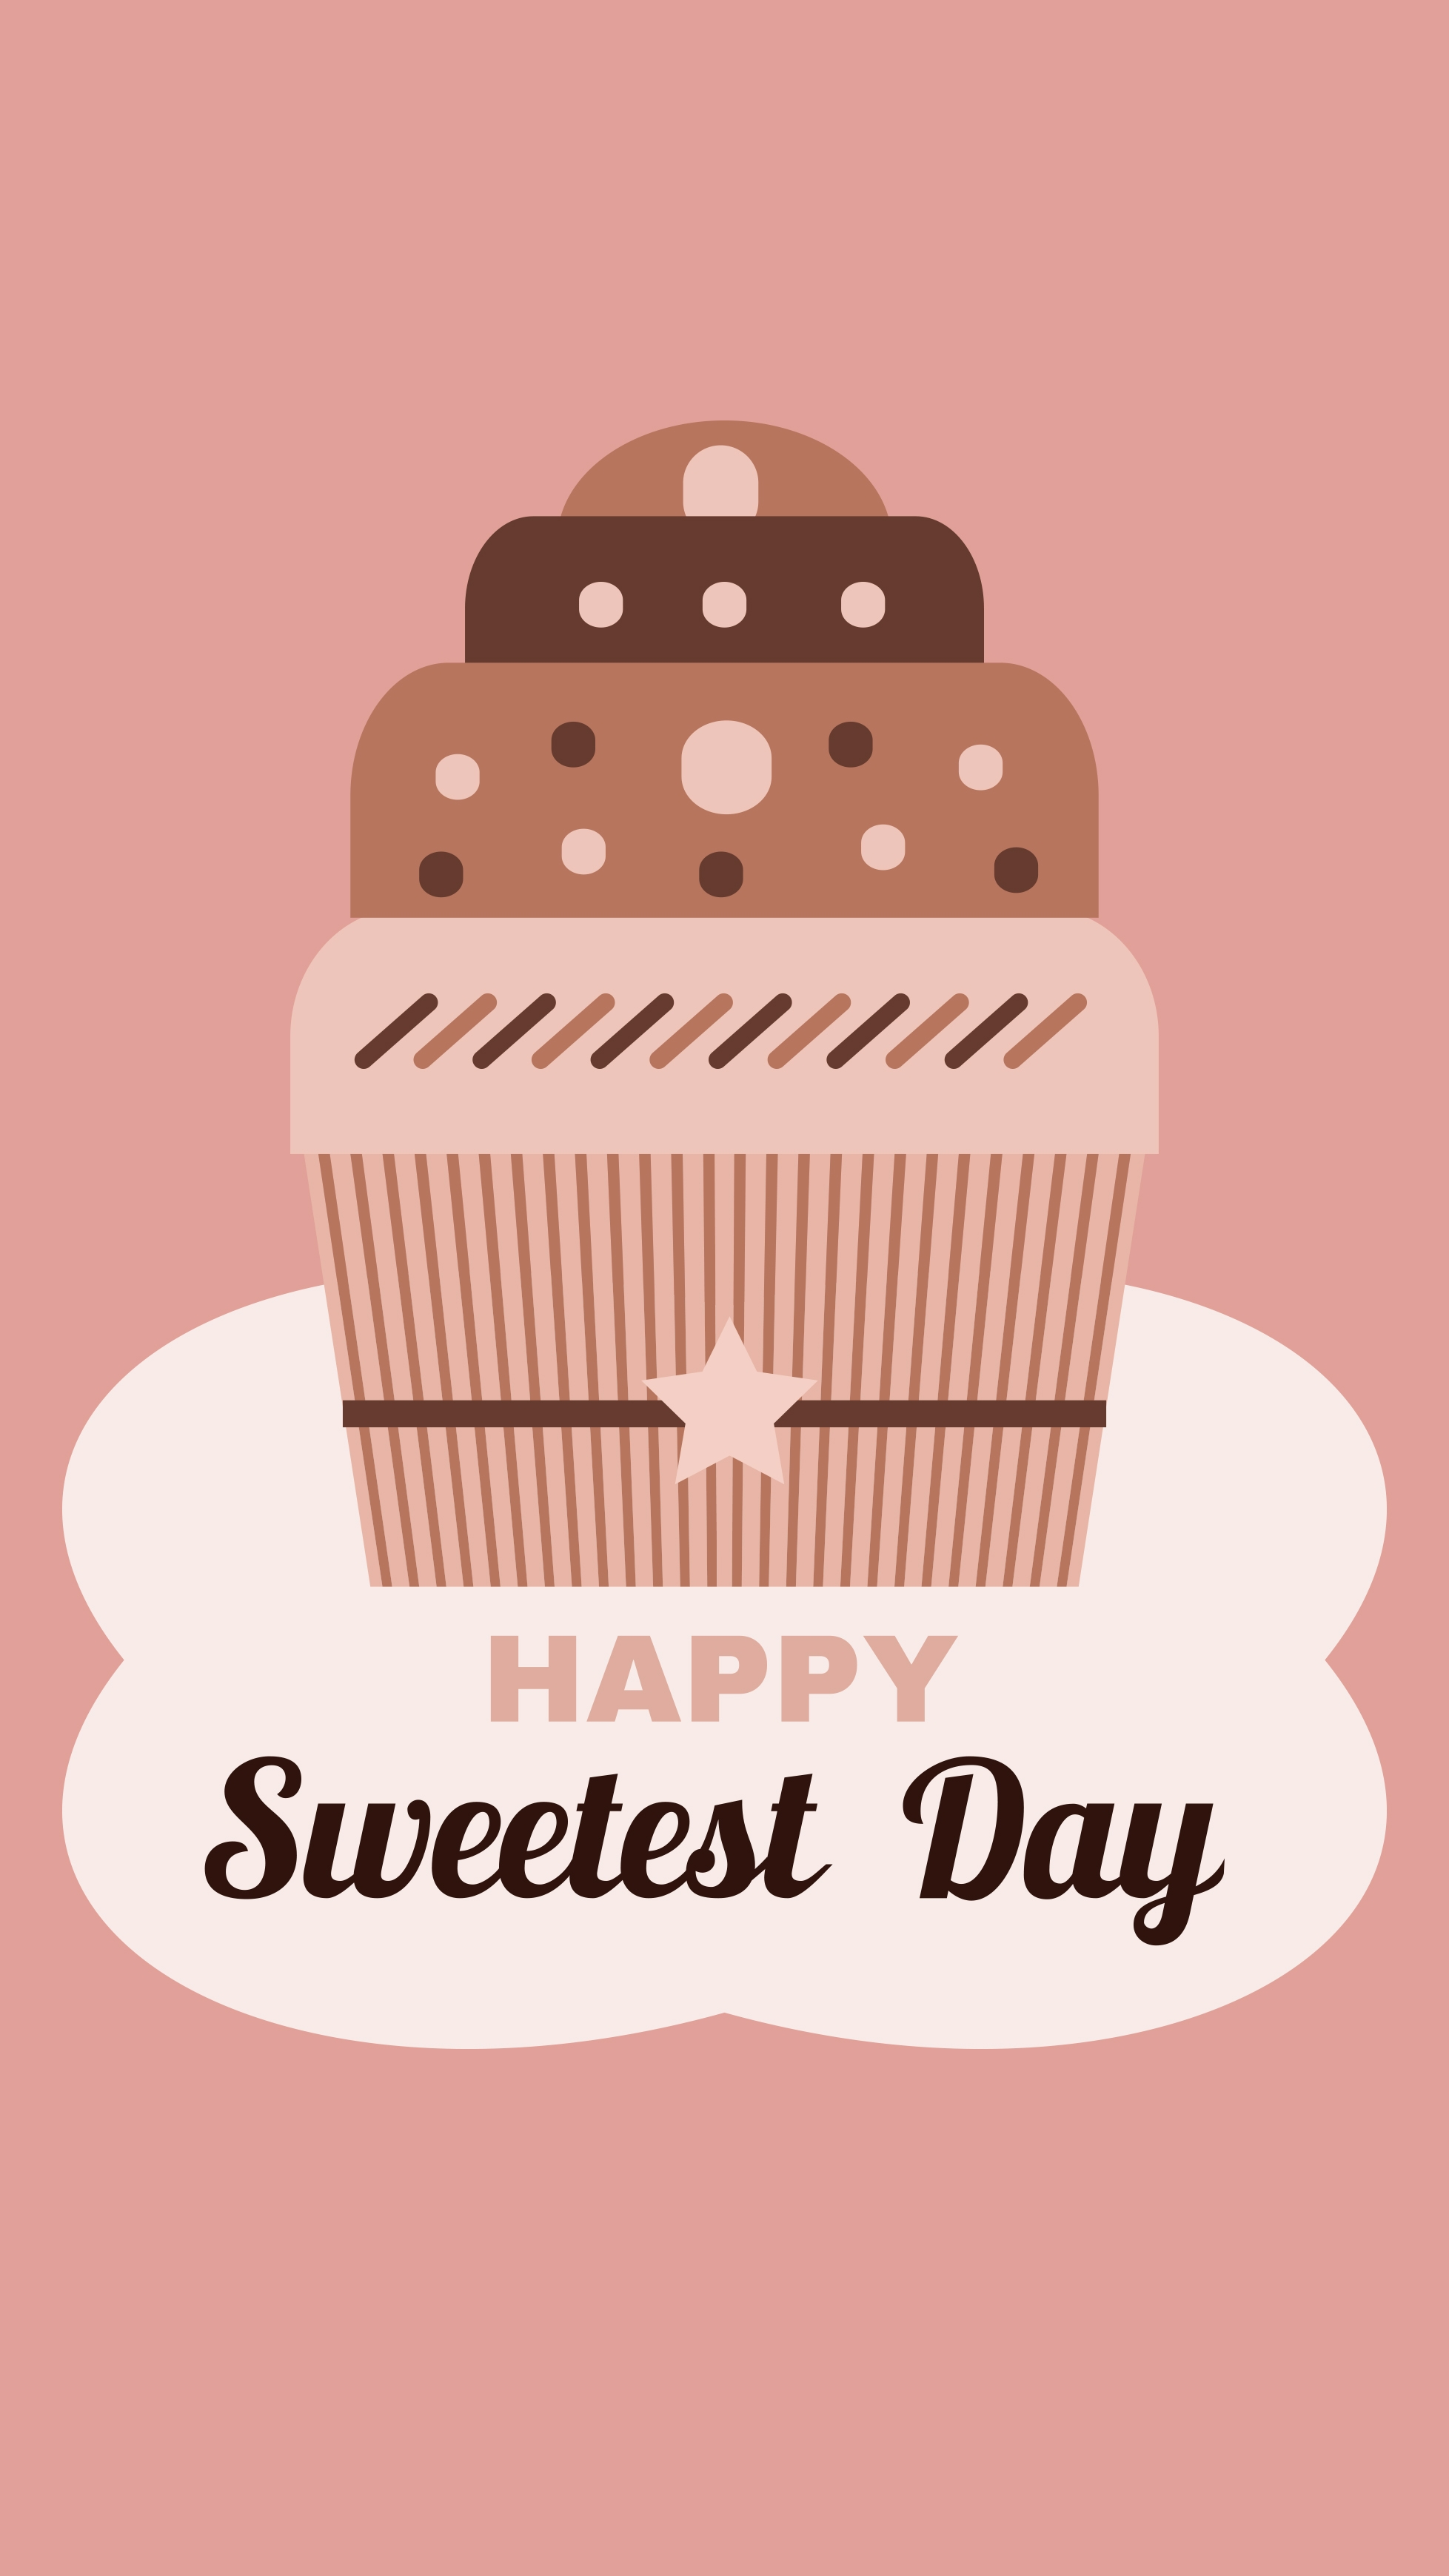 Sweetest Day IV